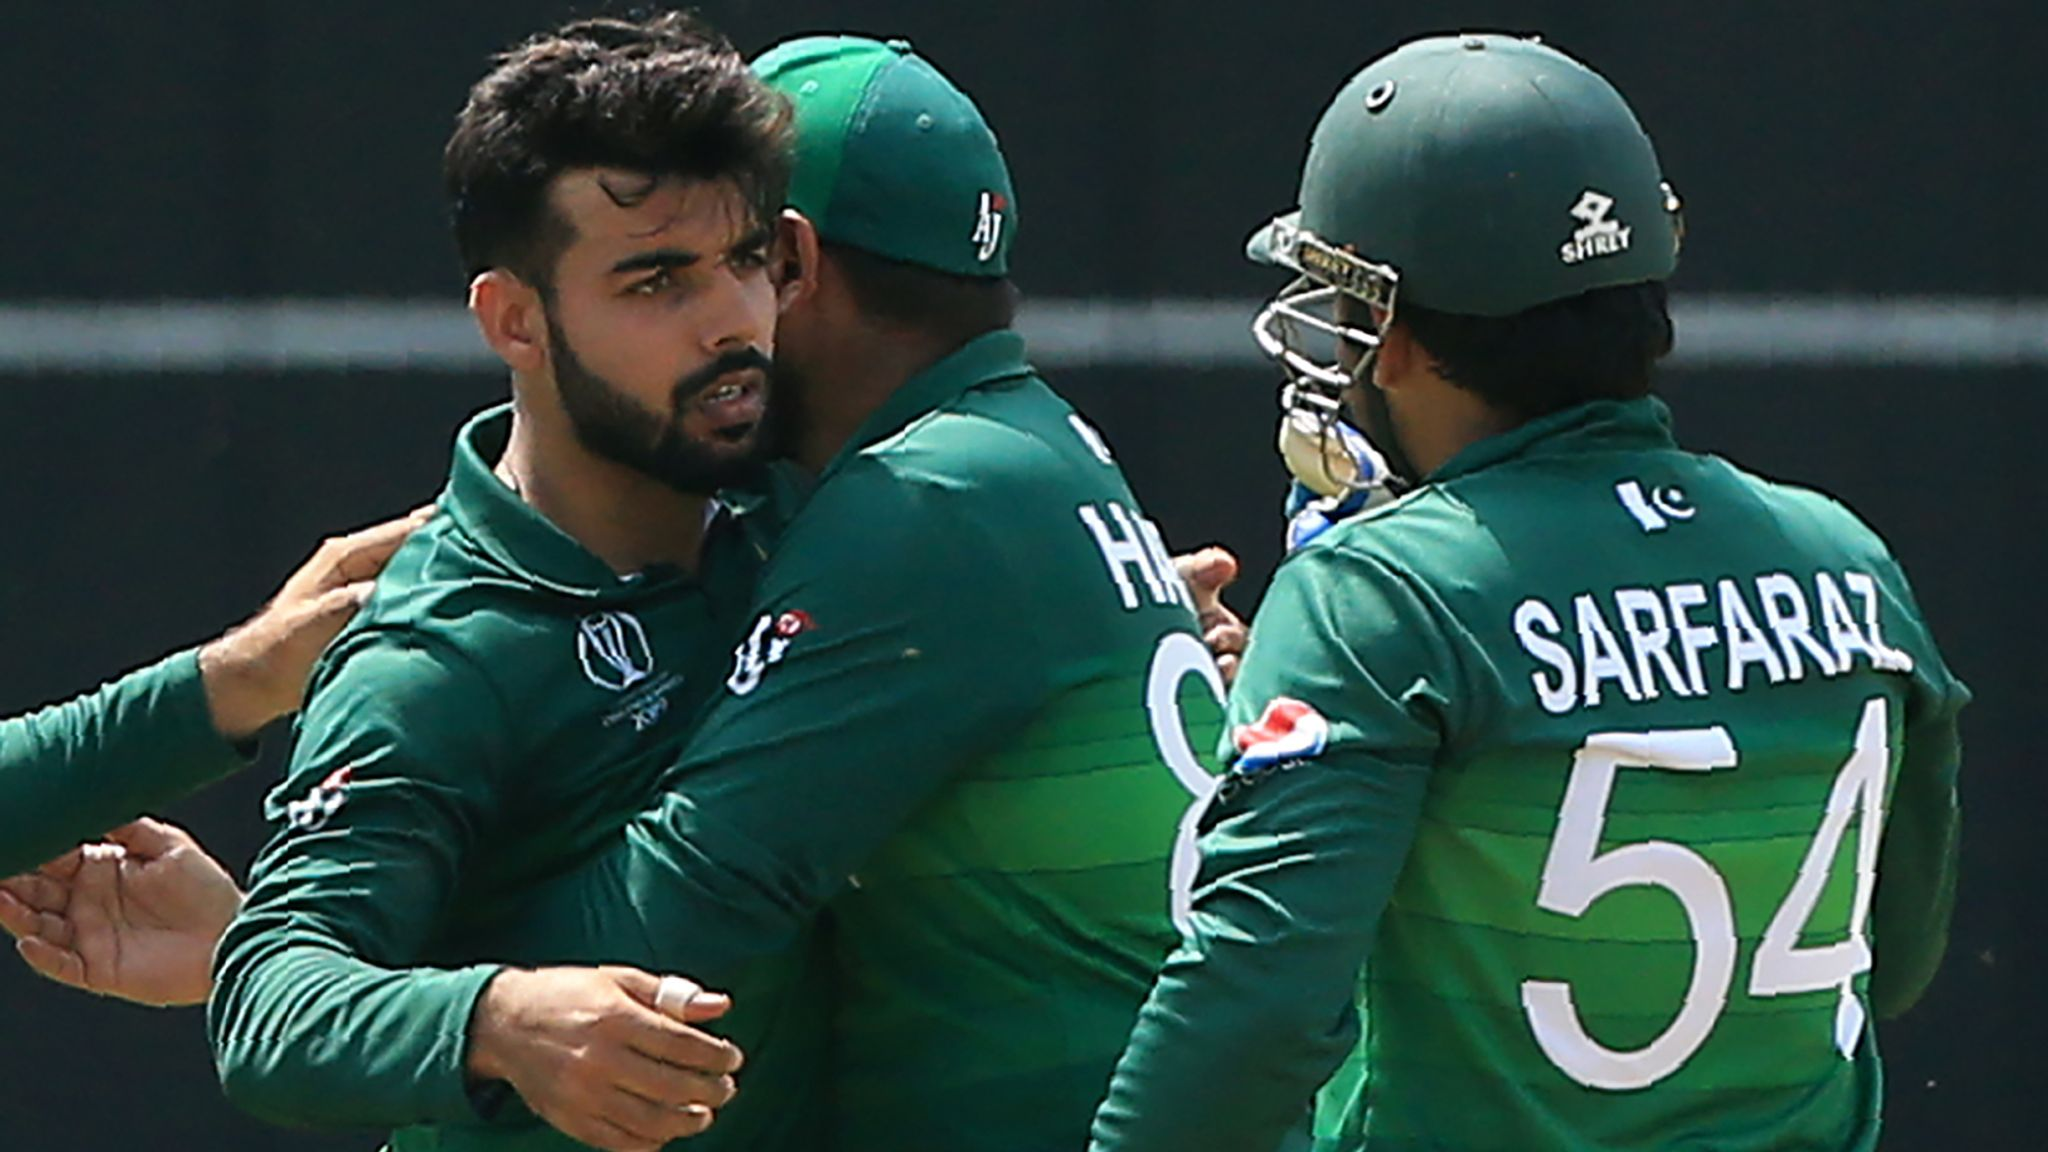 Seven More Pakistan Players Test Positive For Coronavirus Ahead Of England Tour Cricket News Sky Sports